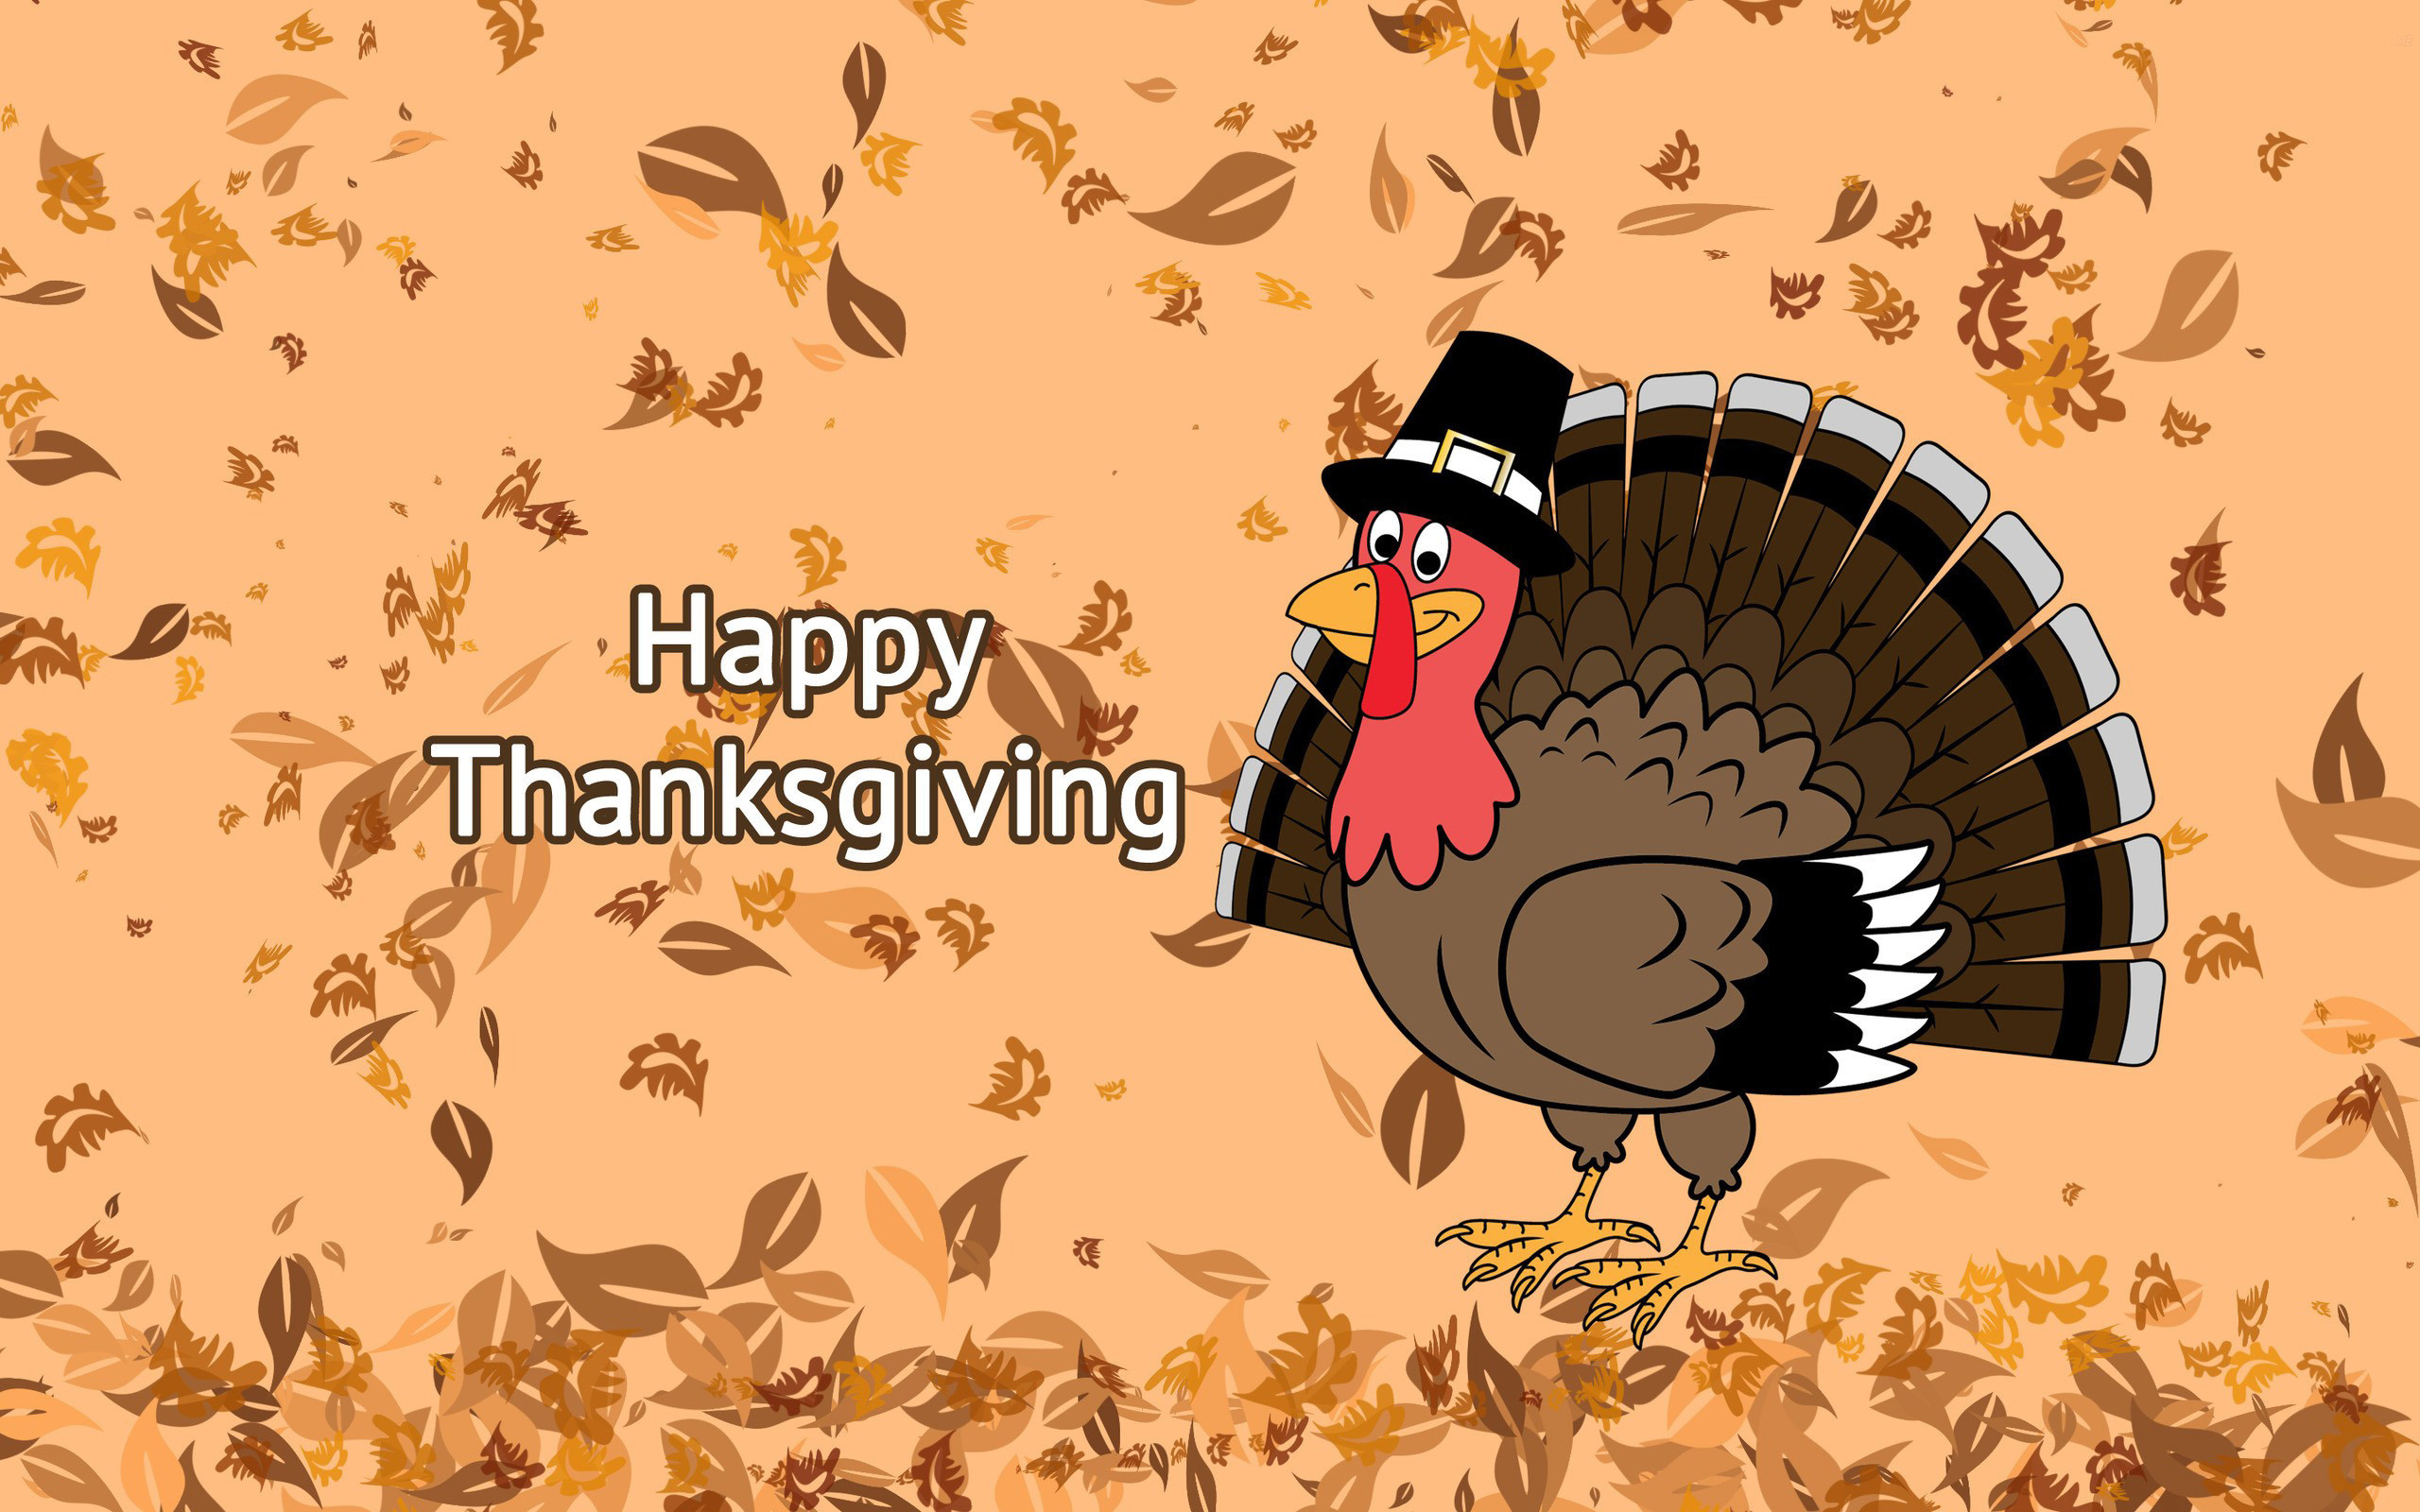 Res: 2560x1600, Happy Thanksgiving Day Falling Leaves On Turkey Background Hd Wallpaper Card